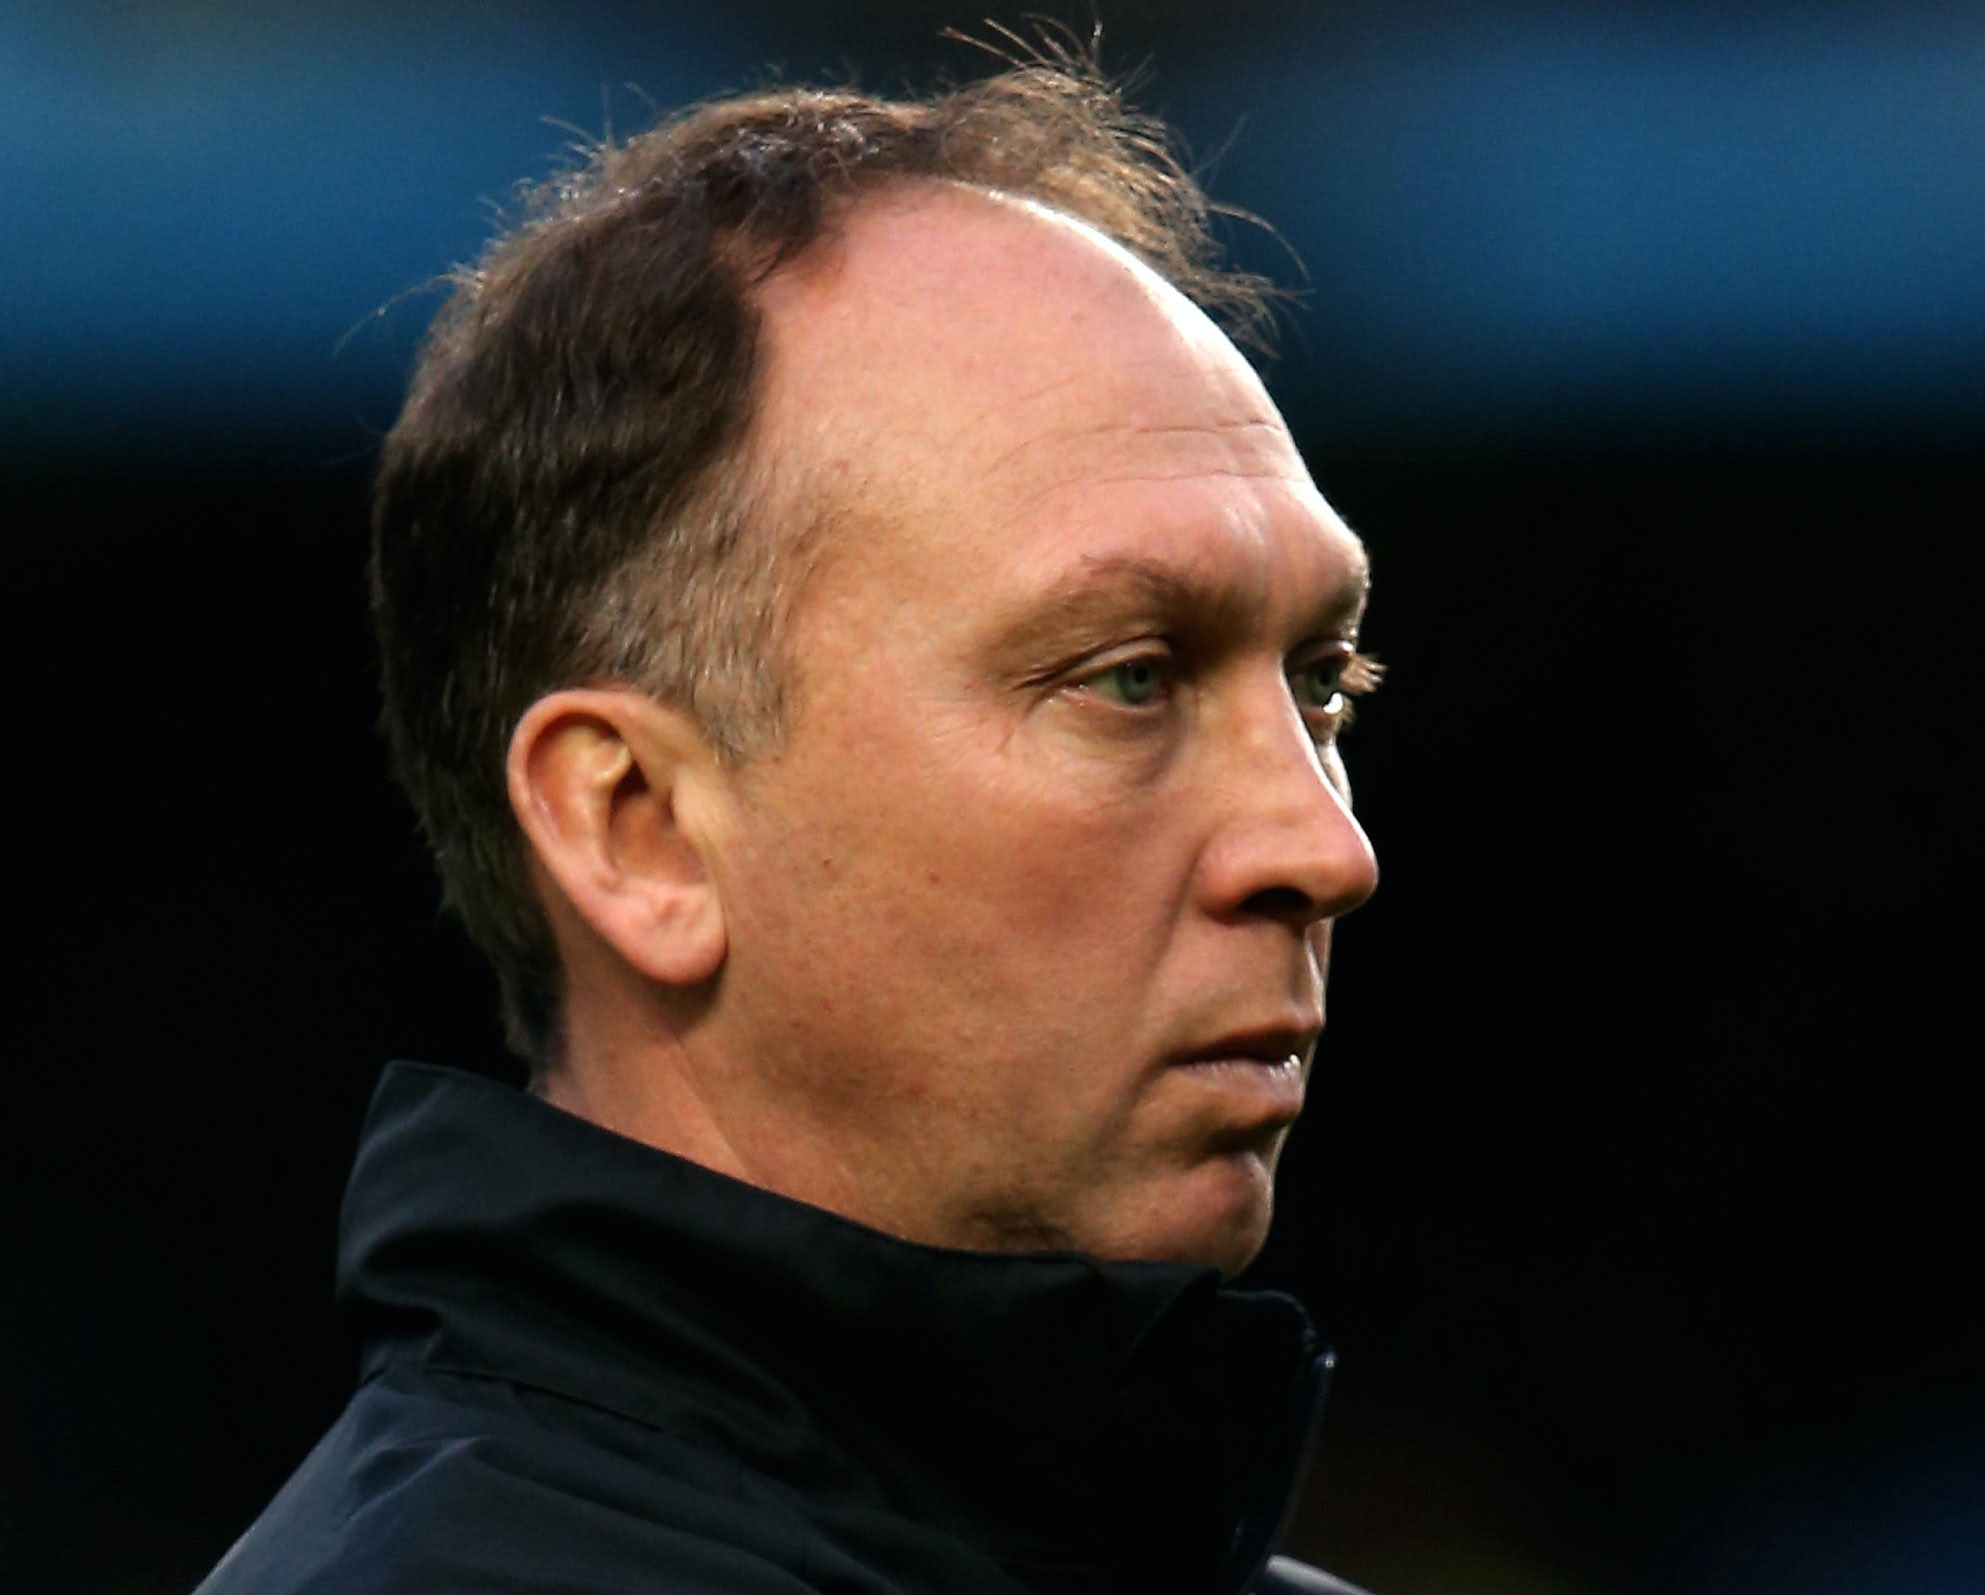 David Platt the Manchester City assistant coach watches his players warm up prior to kickoff during the Barclays Premier League match between Chelsea and Manchester City at Stamford Bridge on November 25, 2012